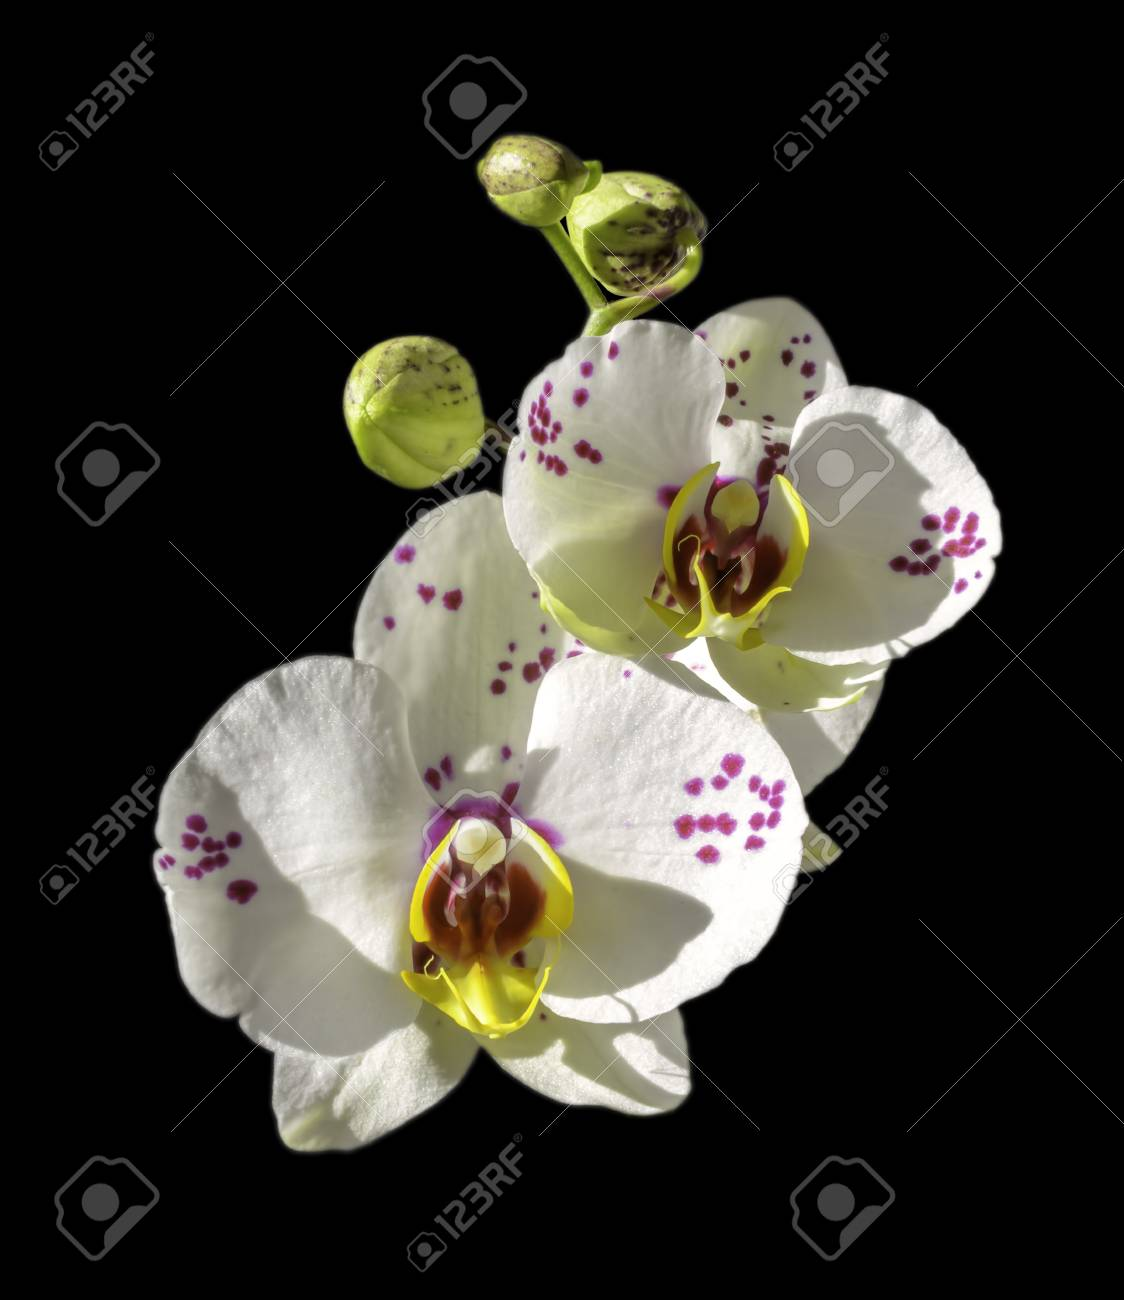 Orchids Flowers On Banch On Black Background Flowers Of